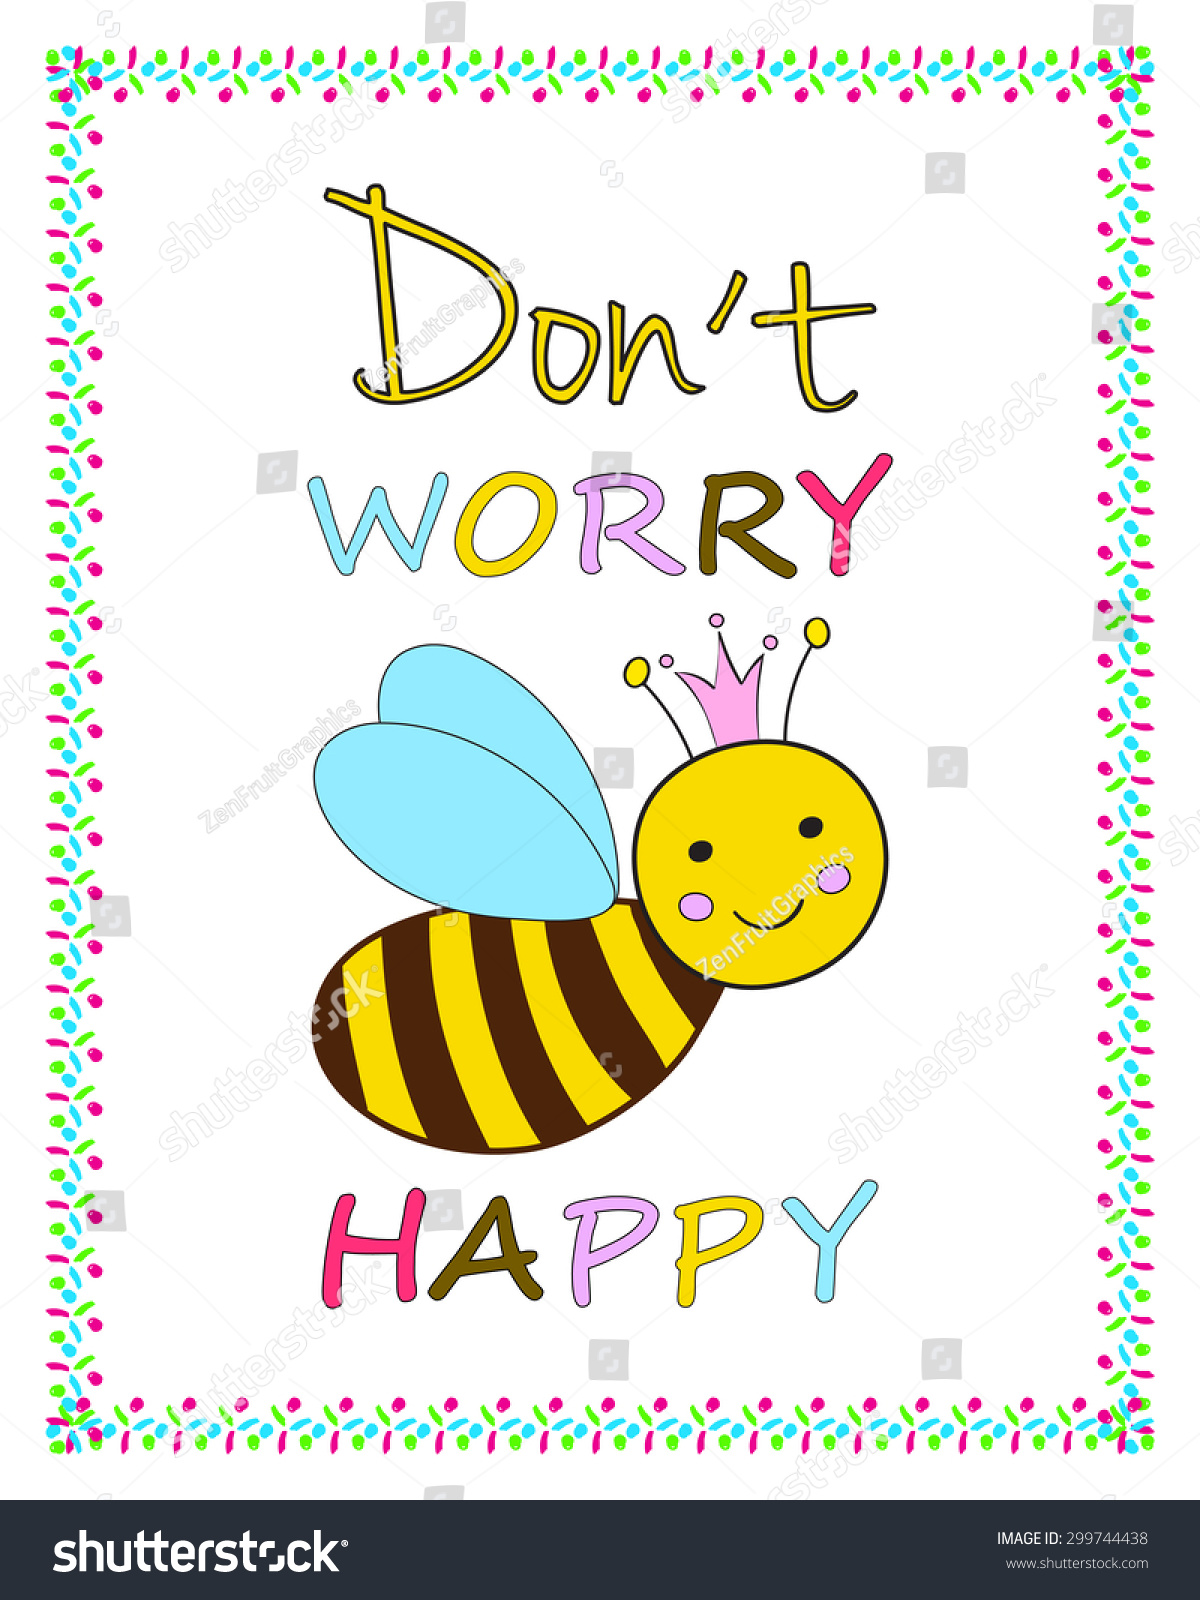 Funny Greeting Card Template Smiling Queen Stock Vector